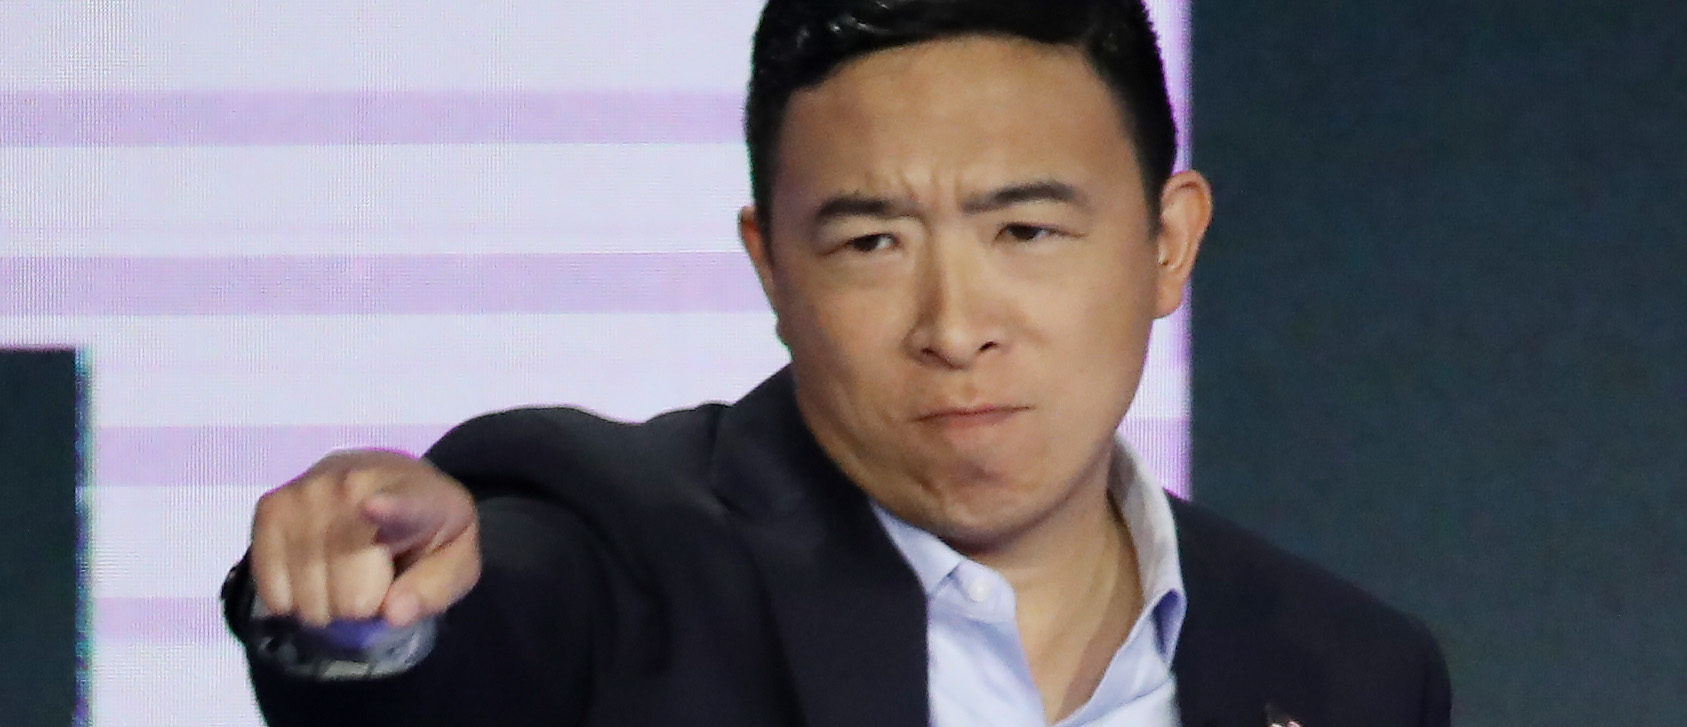 Andrew Yang Divides Twitter With Stand Against 'Rampant Access To Pornography'